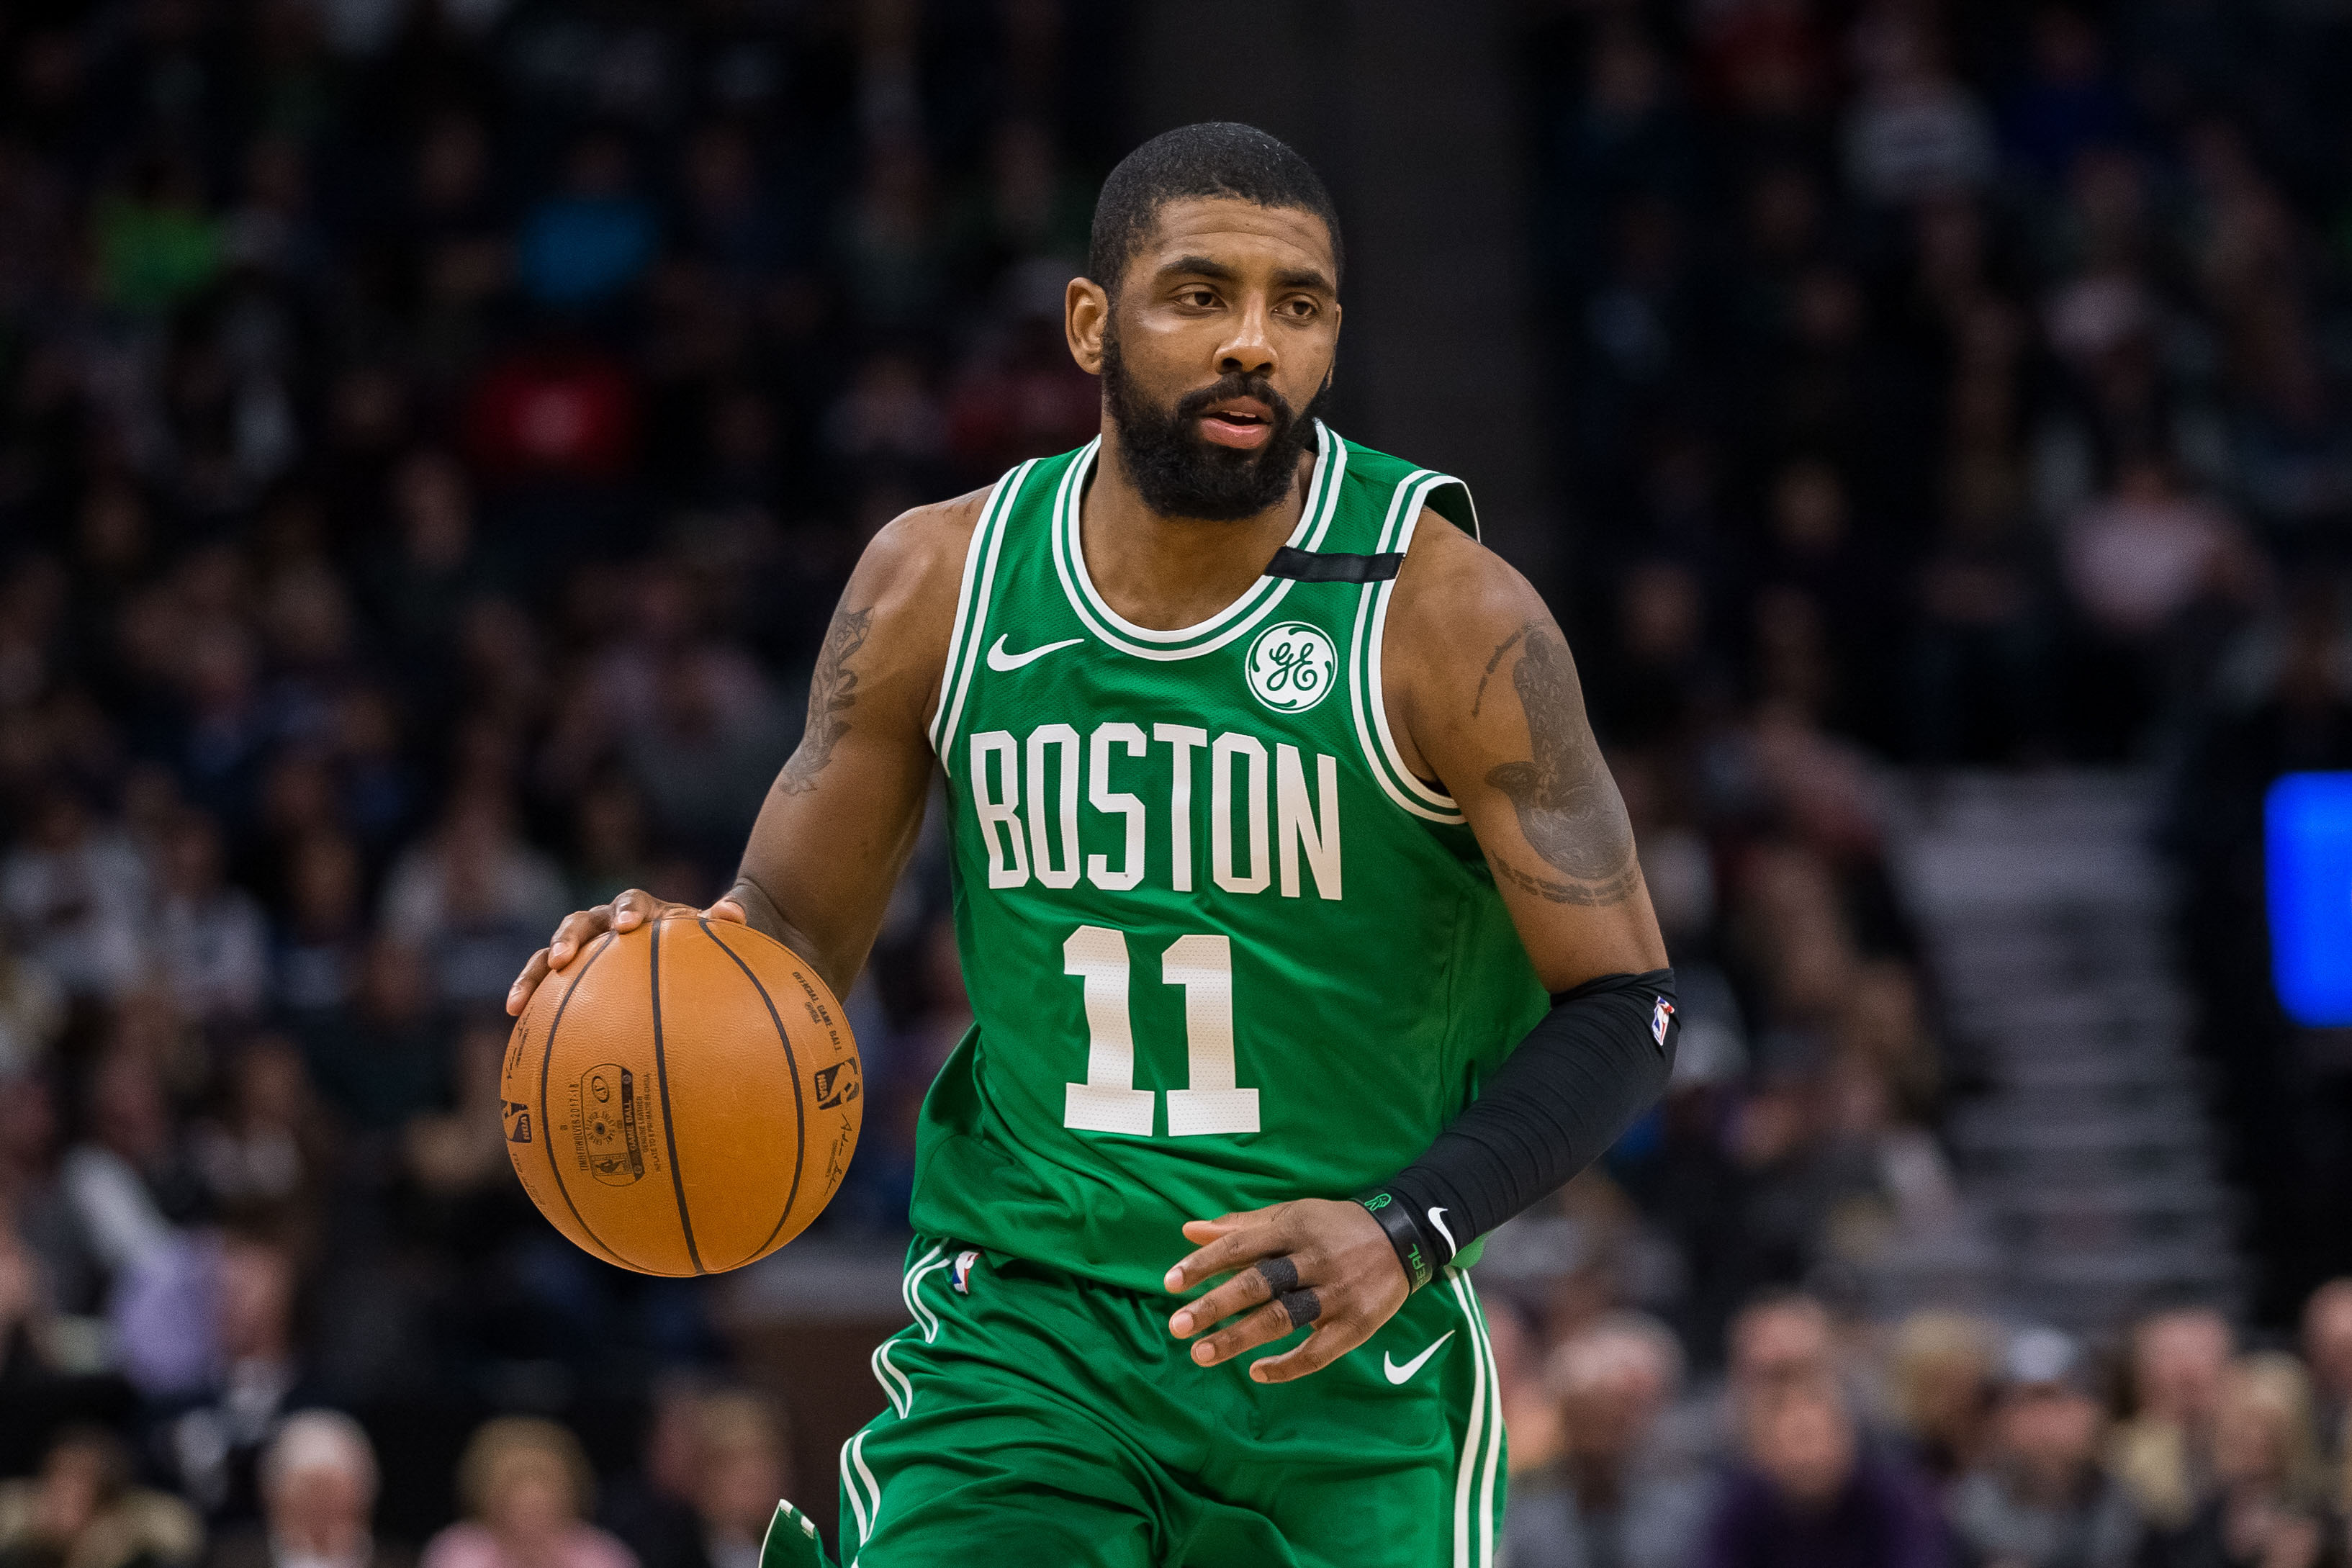 a1a21caa6e3e Why Kyrie Irving is the X-Factor of the Boston Celtics  2018-19 Season